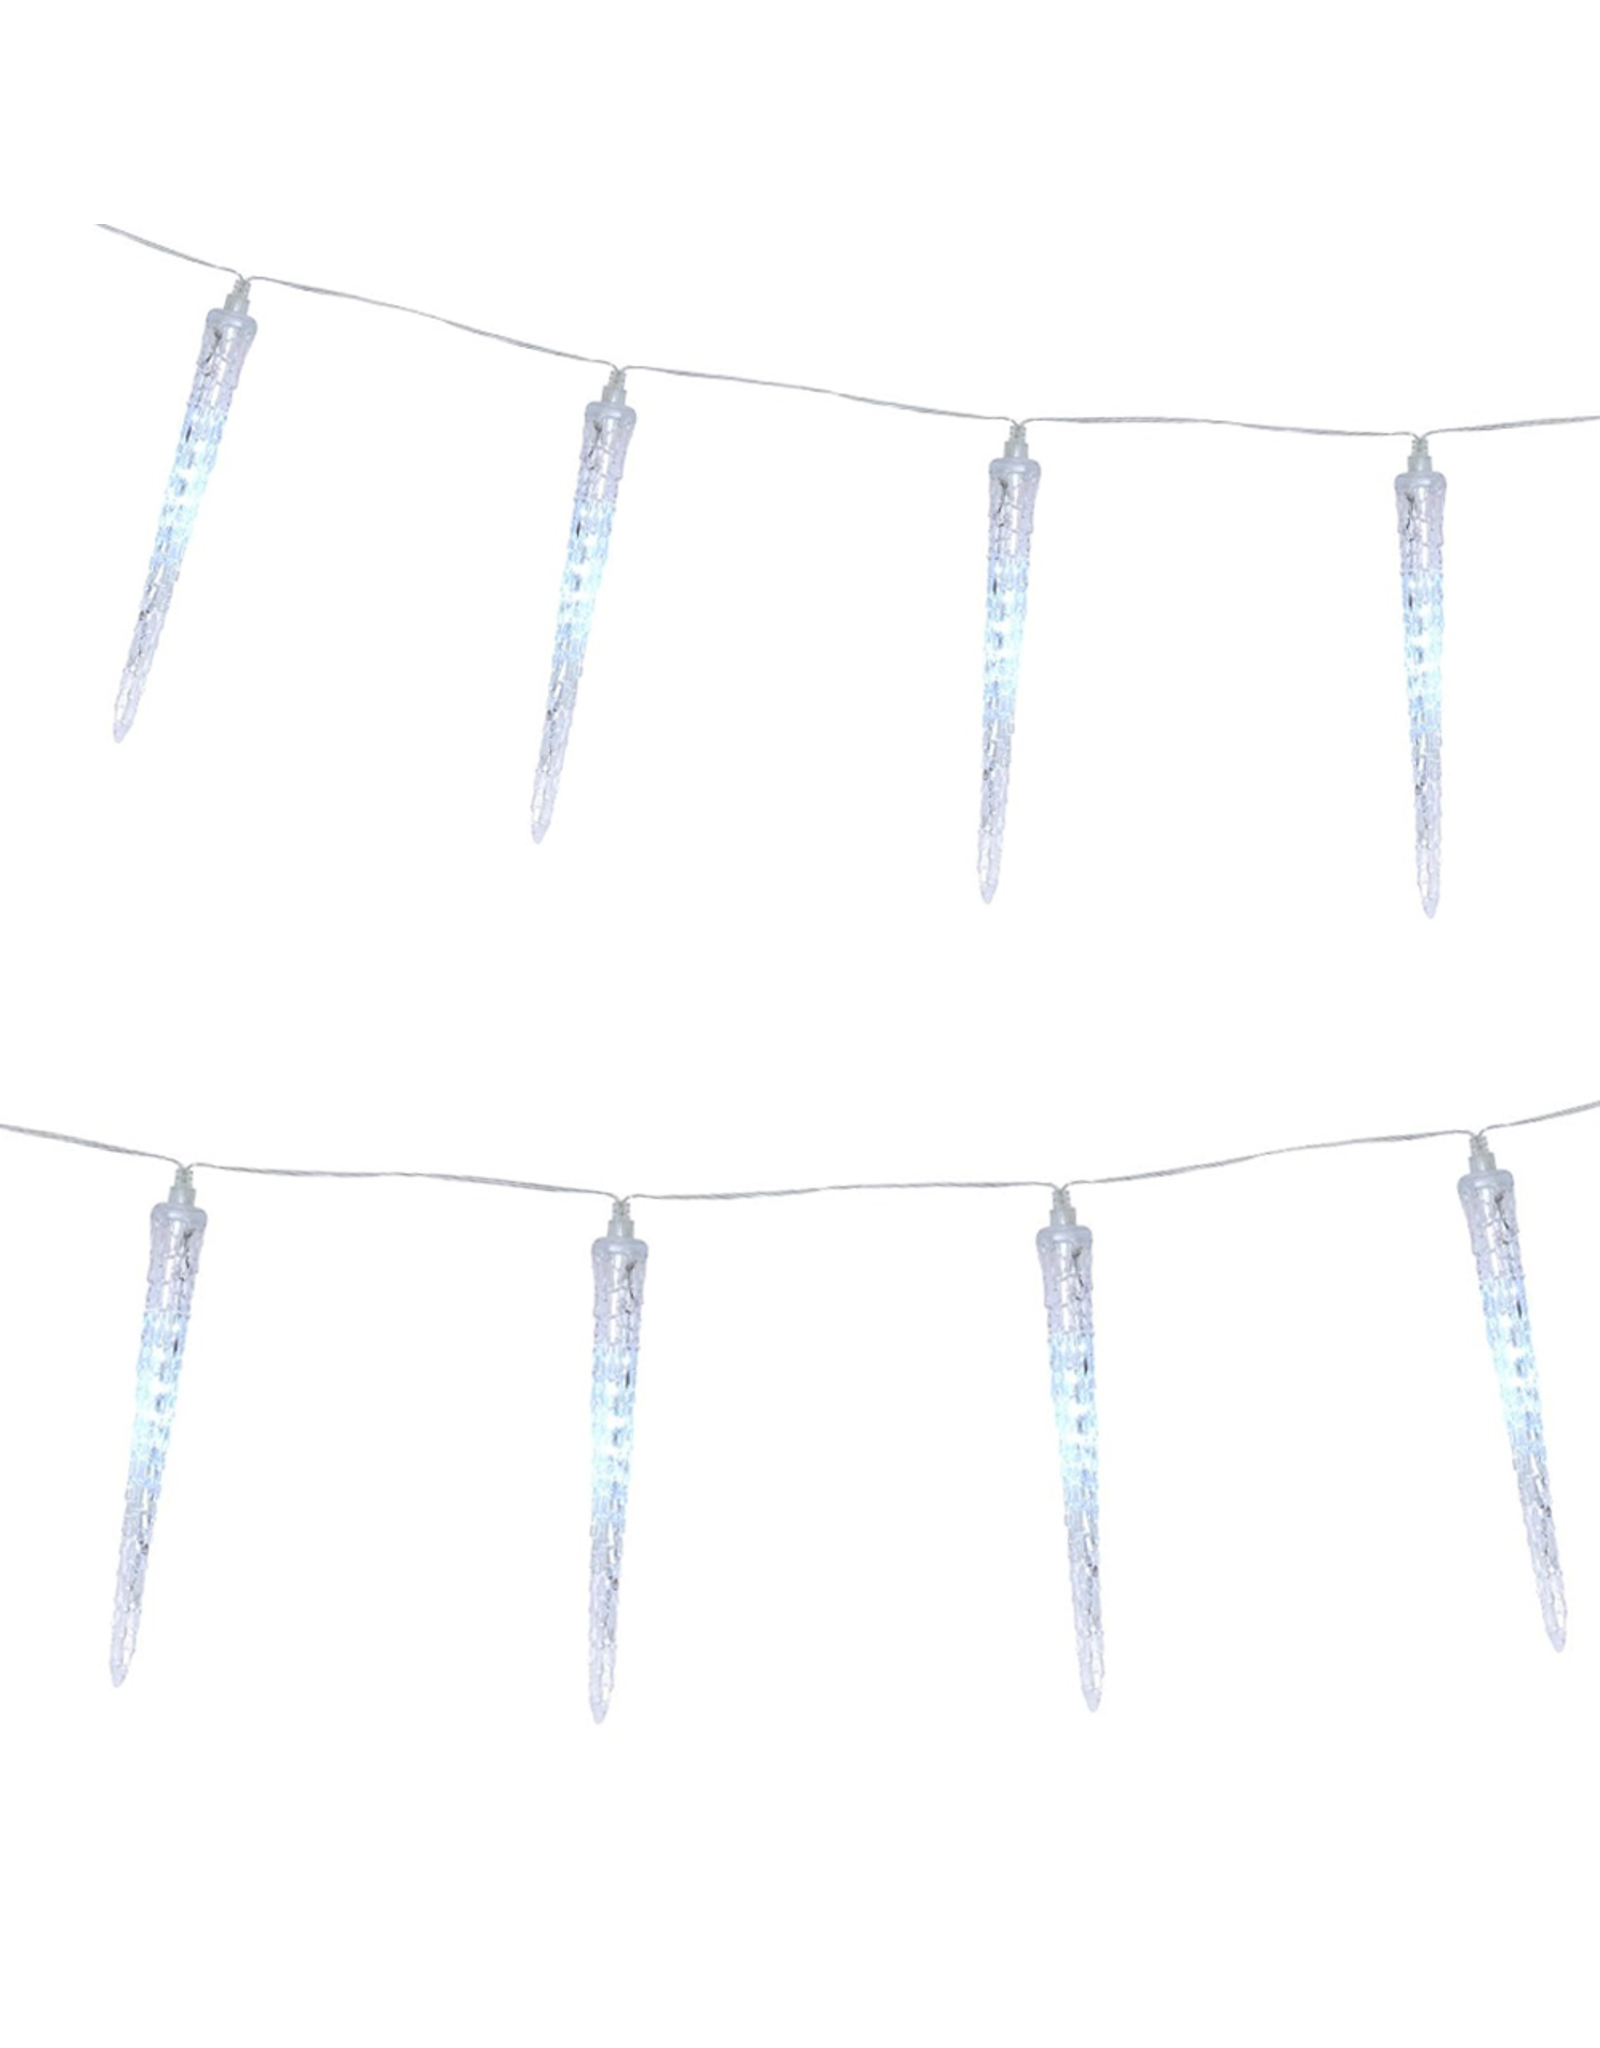 Darice 8 Raining Icicle Christmas Lights w 12L LEDs Each Icicle